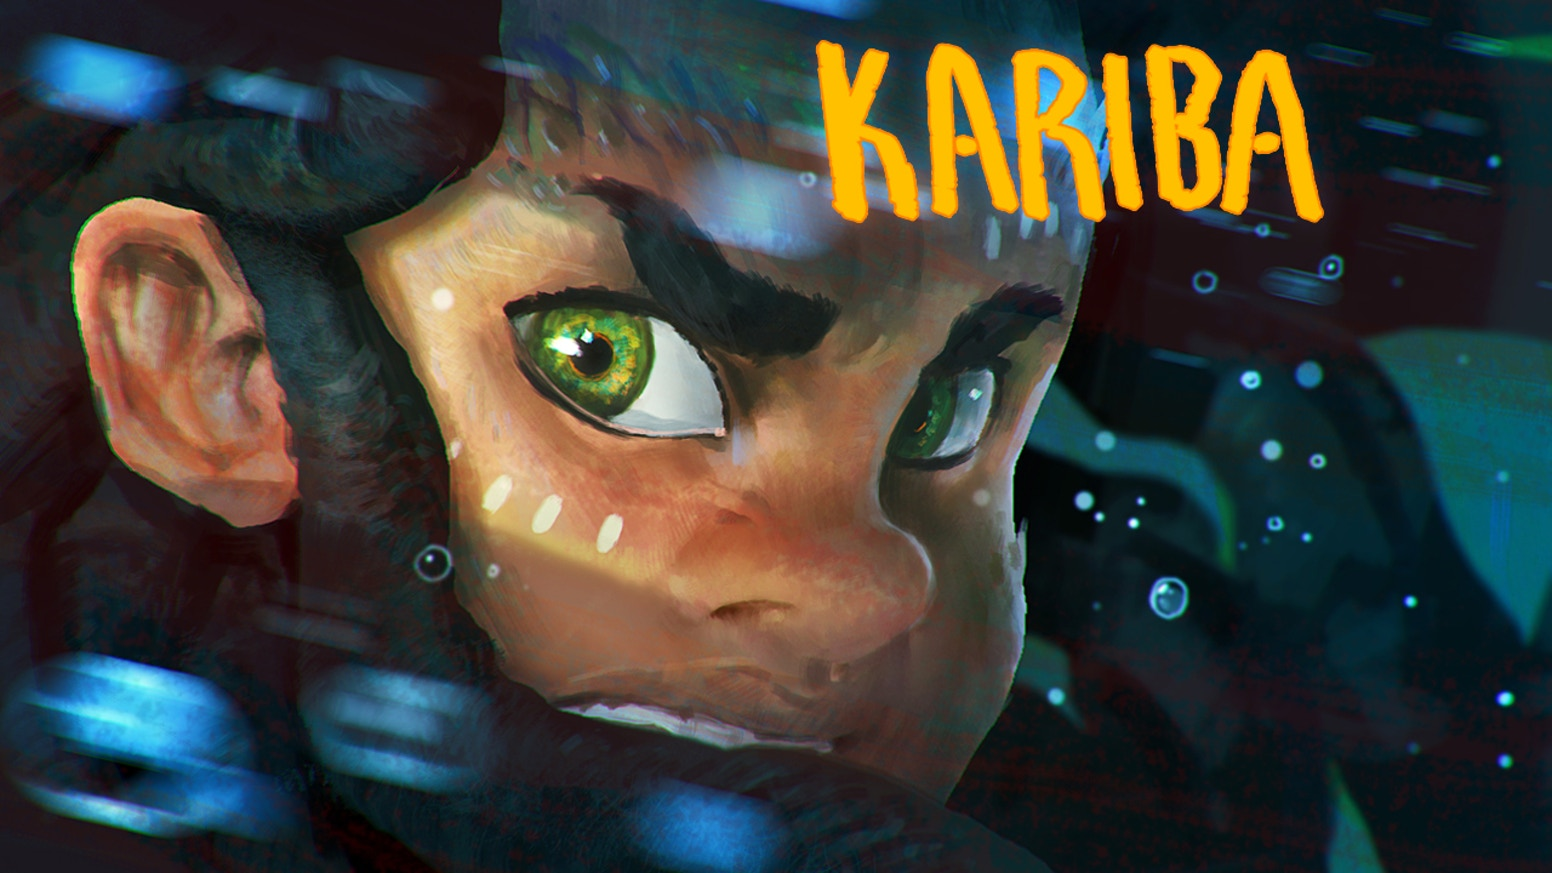 History and mythology collide in the story of KARIBA, an African graphic novel.